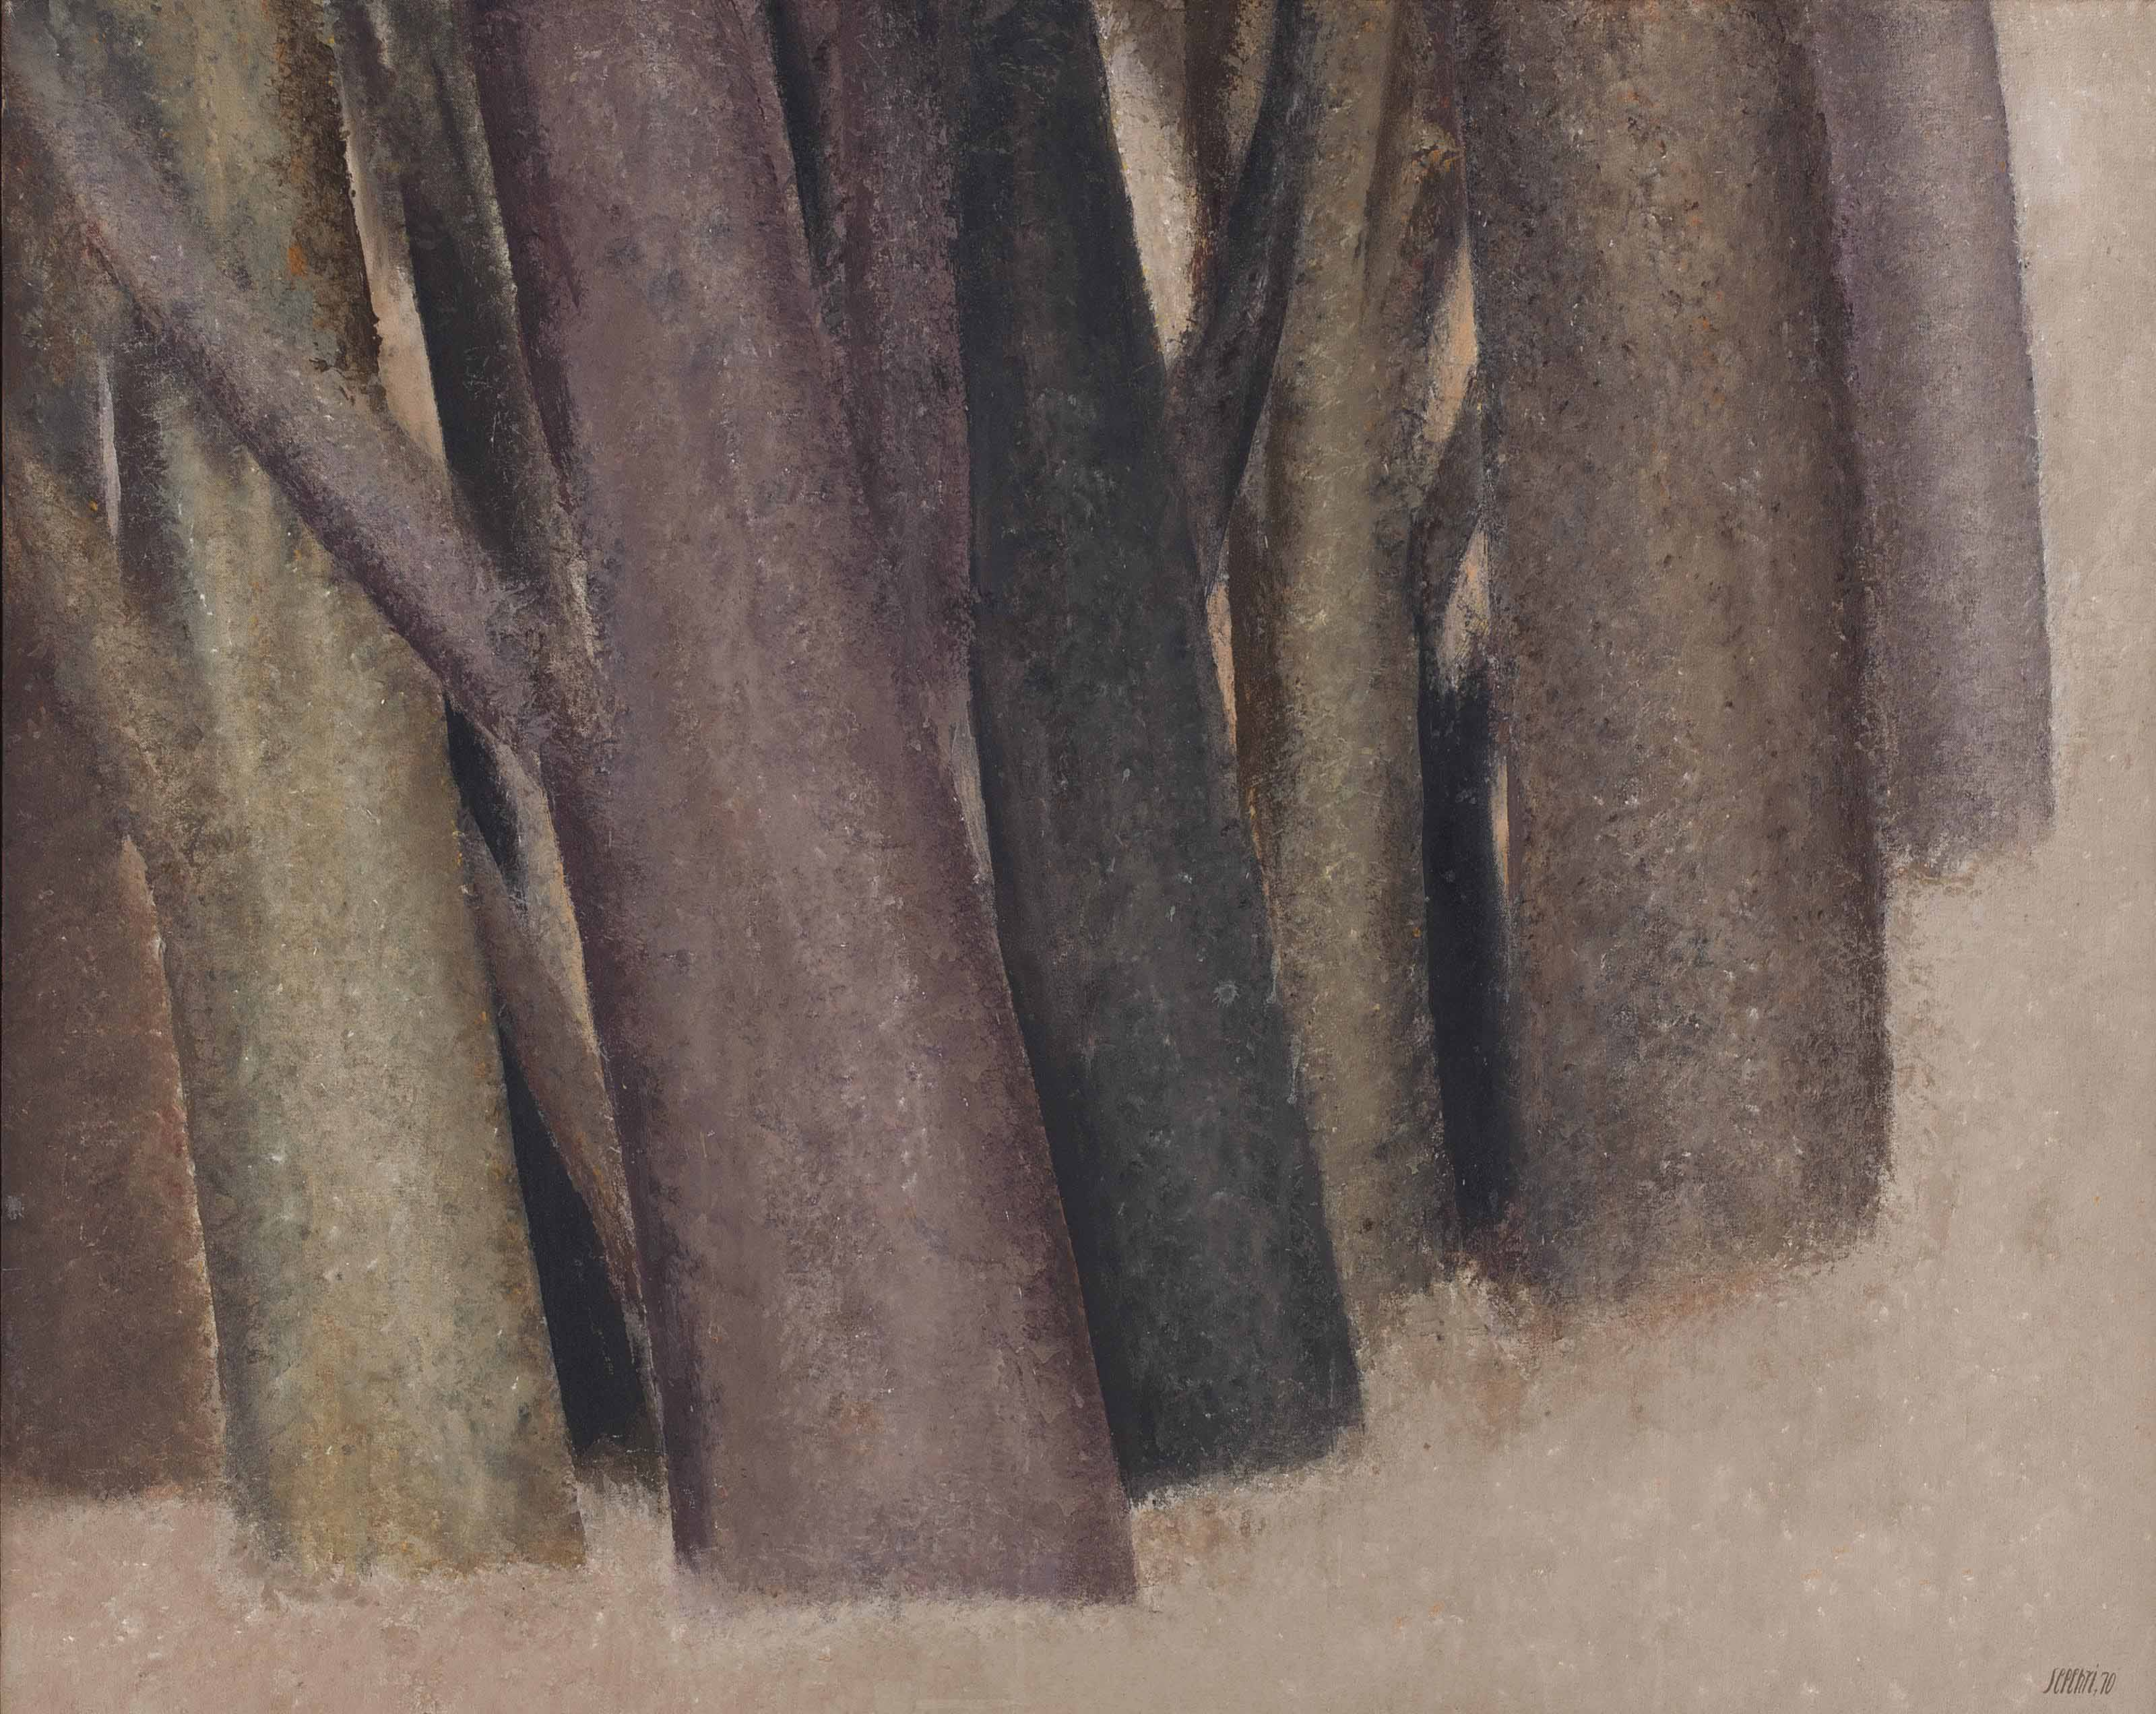 Untitled (from the Tree Trunks series)